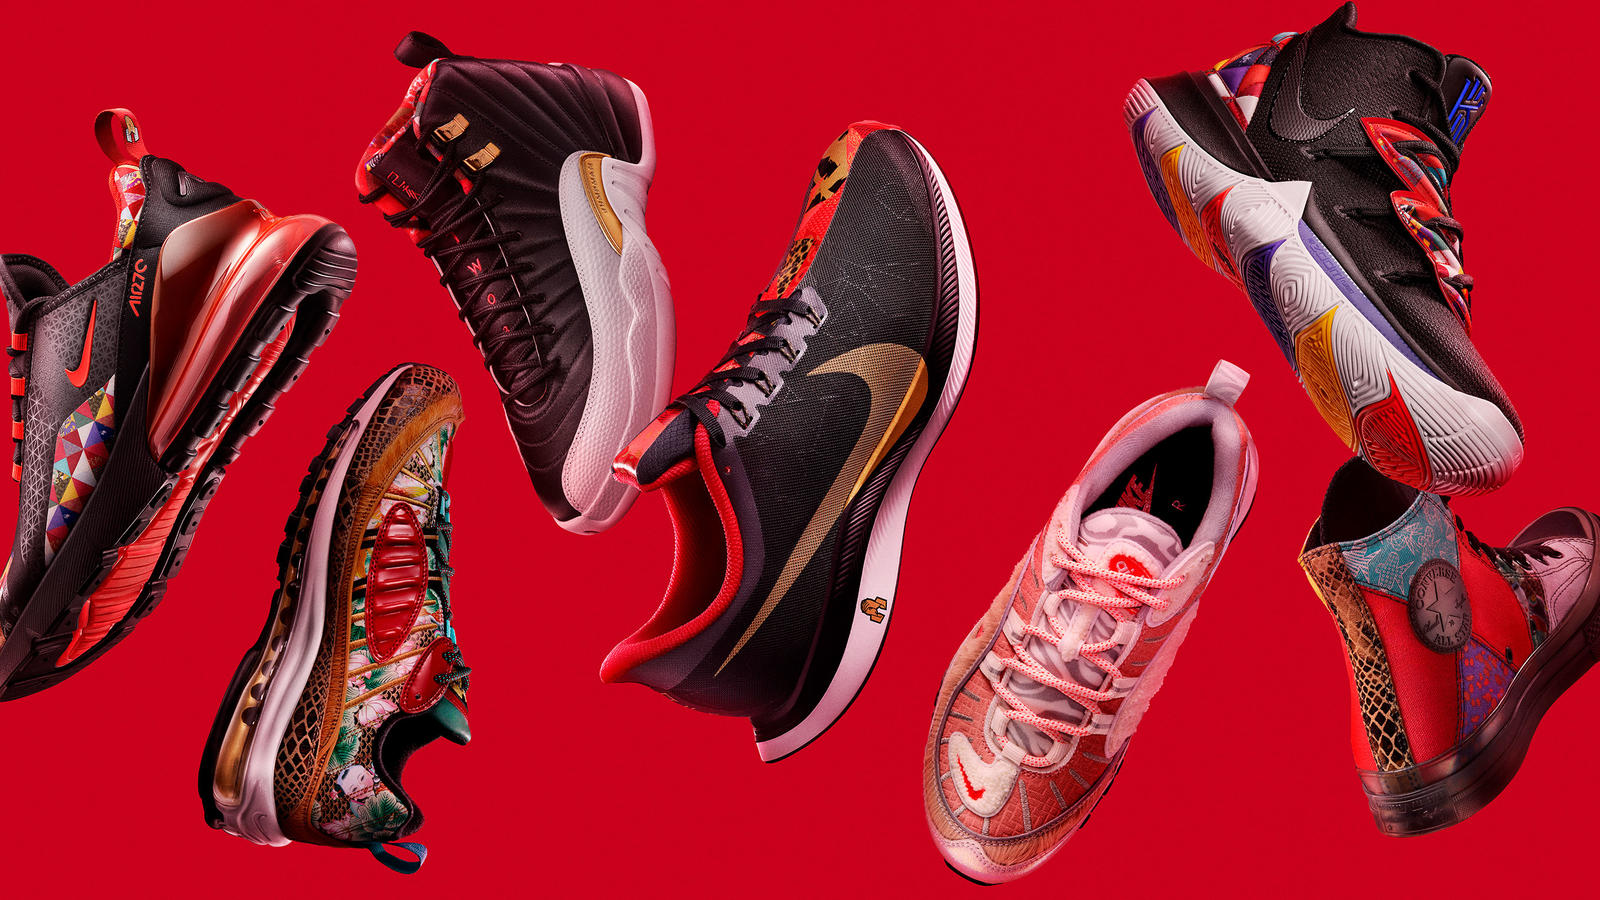 sale retailer 48d8c 6626a Nike Chinese New Year Collection 2019 - Nike News